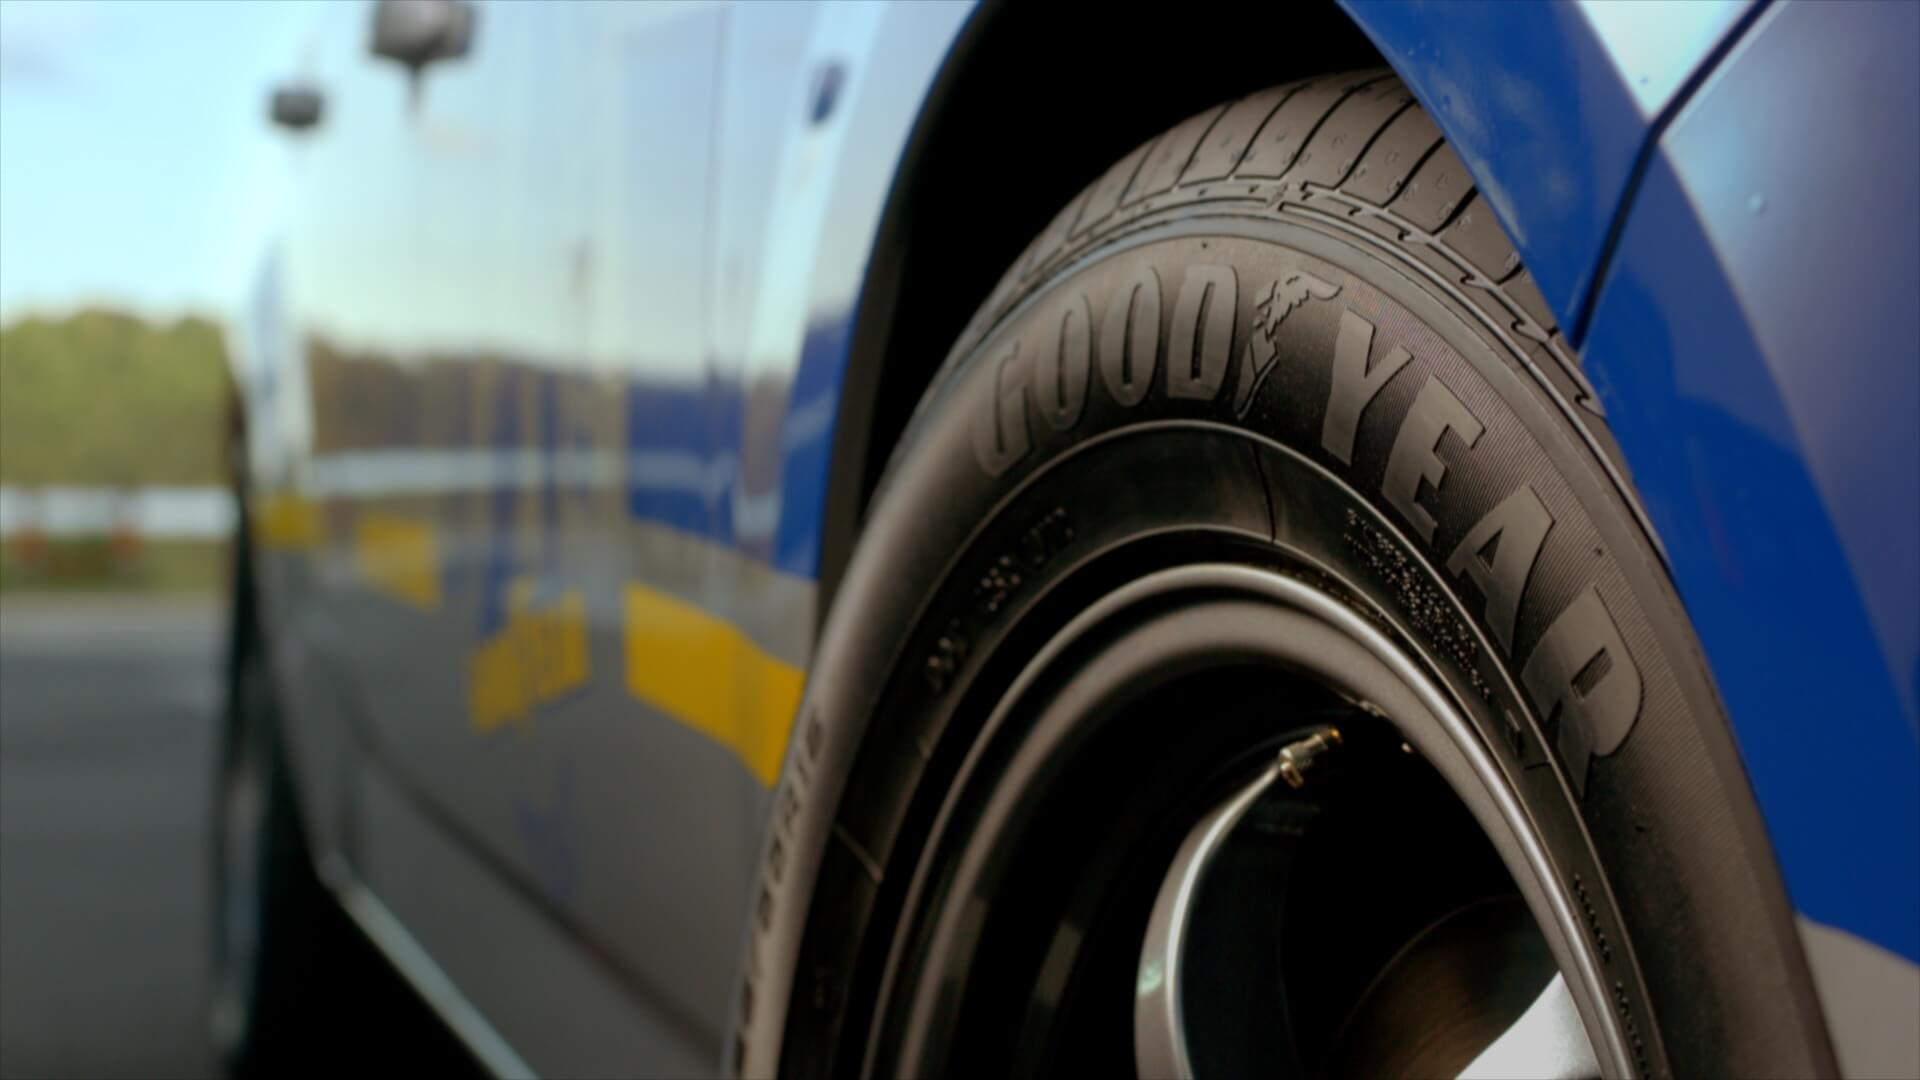 Goodyear Car Tires Prices